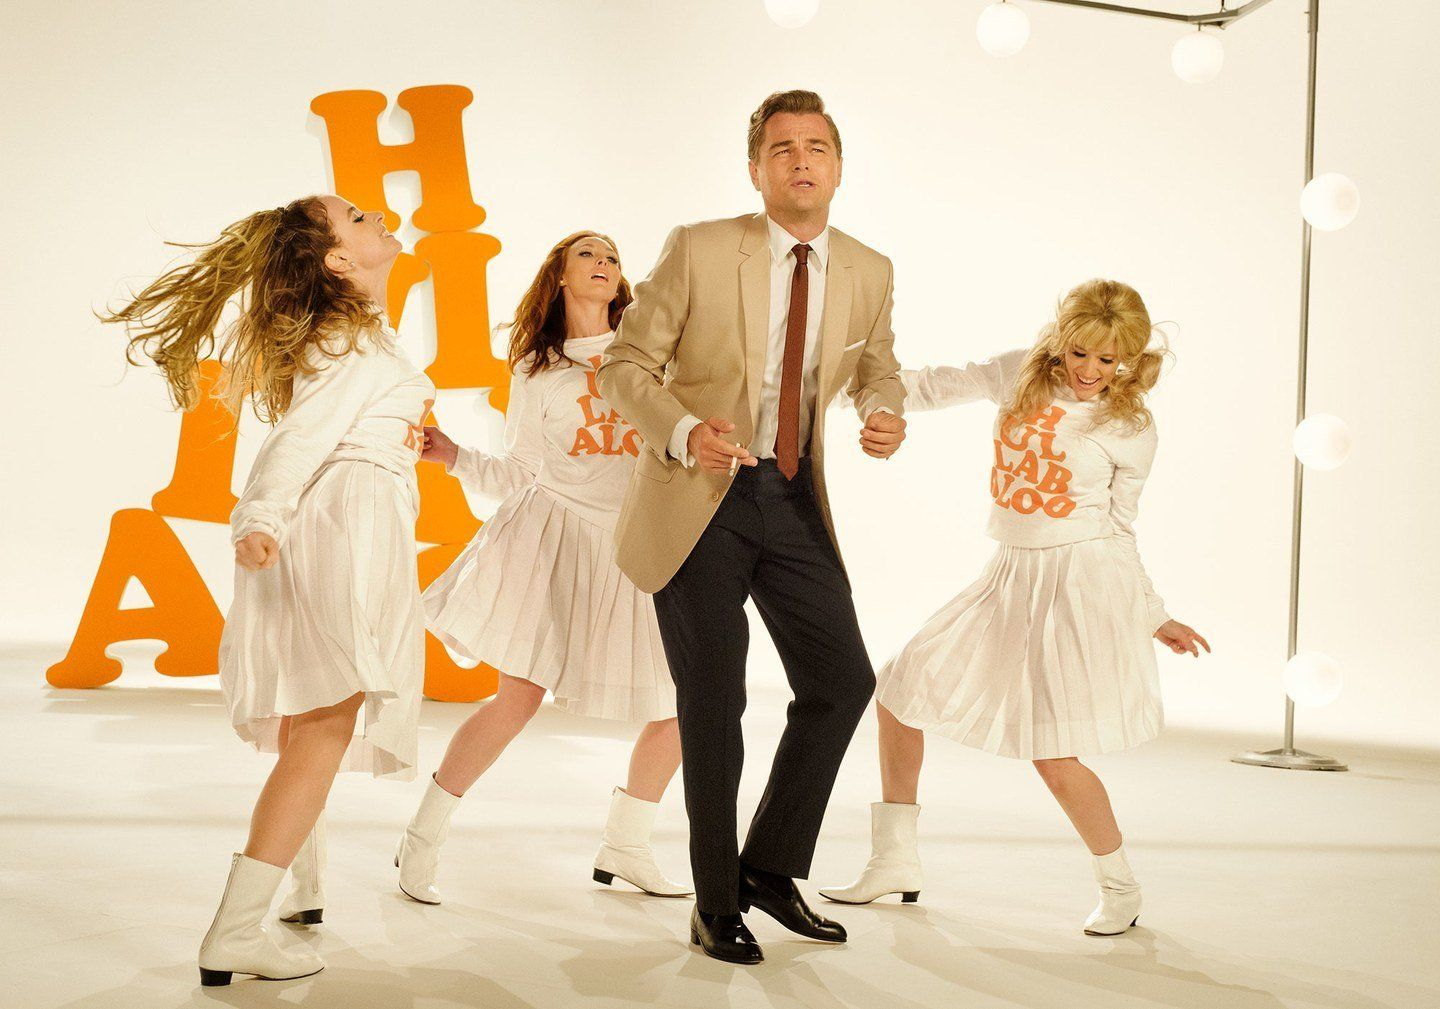 'Once Upon A Time In Hollywood' Trailer Is A '60s Fever Dream With DiCaprio Dancing